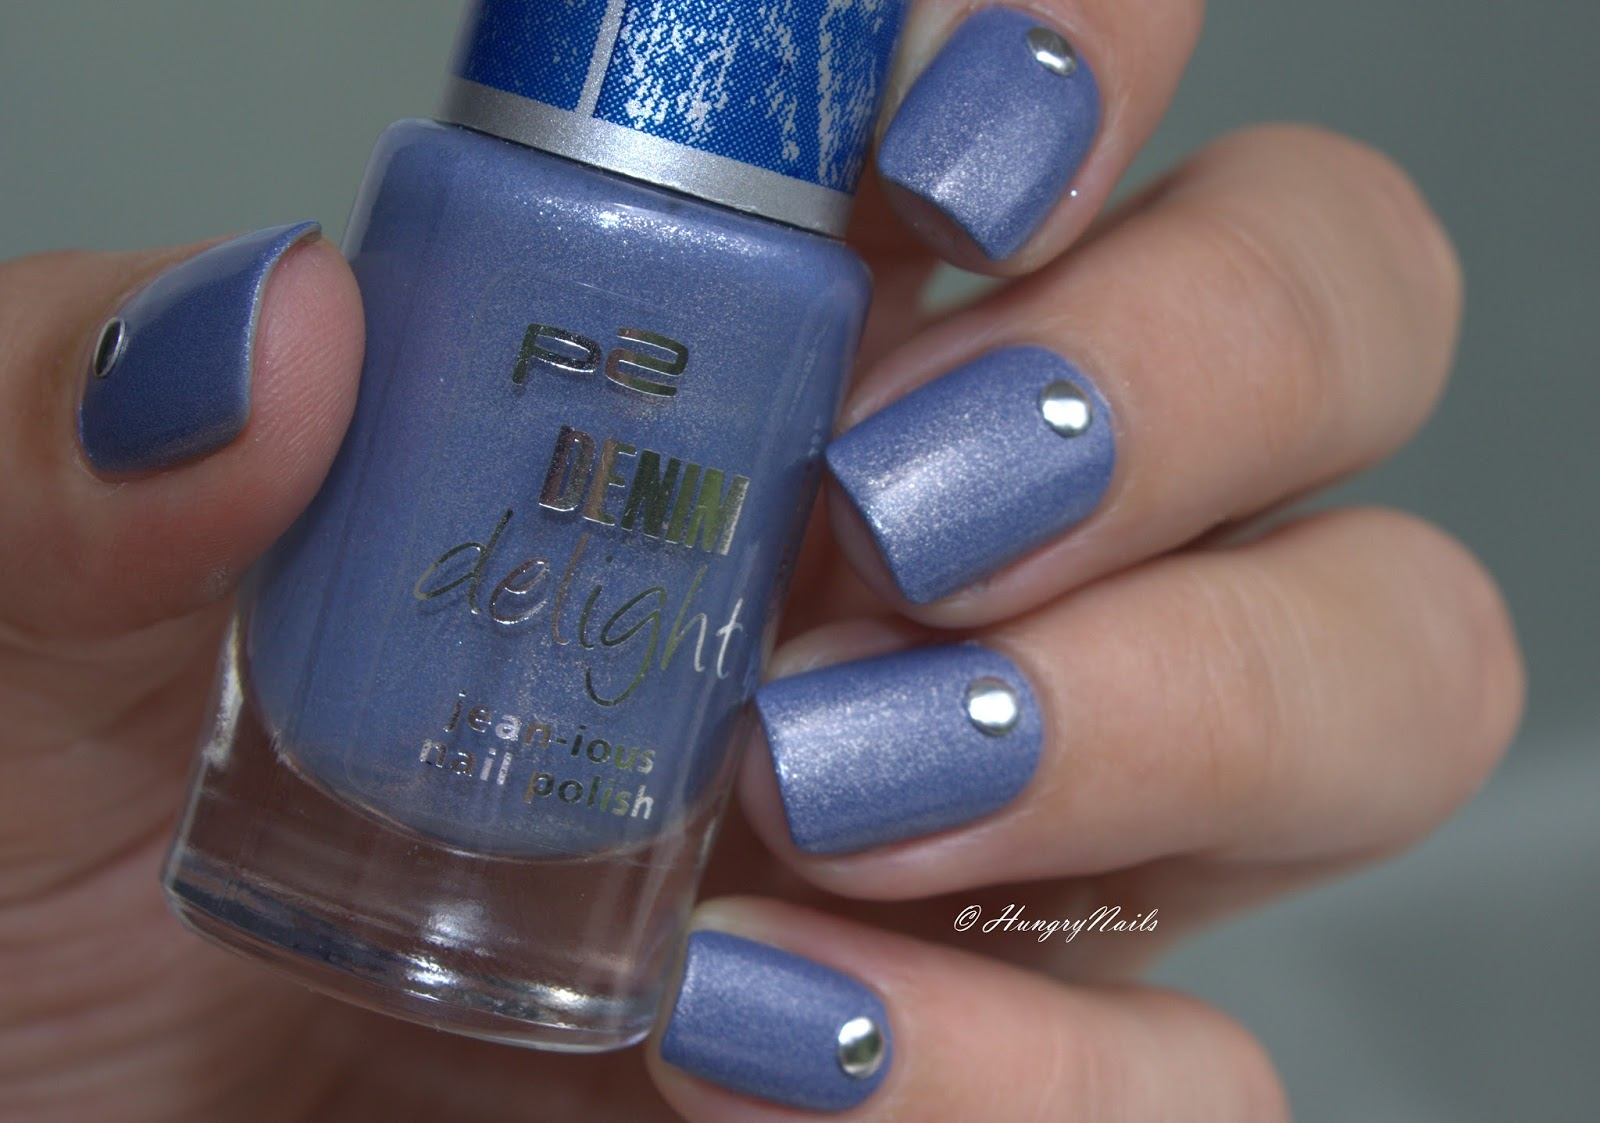 http://hungrynails.blogspot.de/2016/07/p2-navy-washed-denim.html